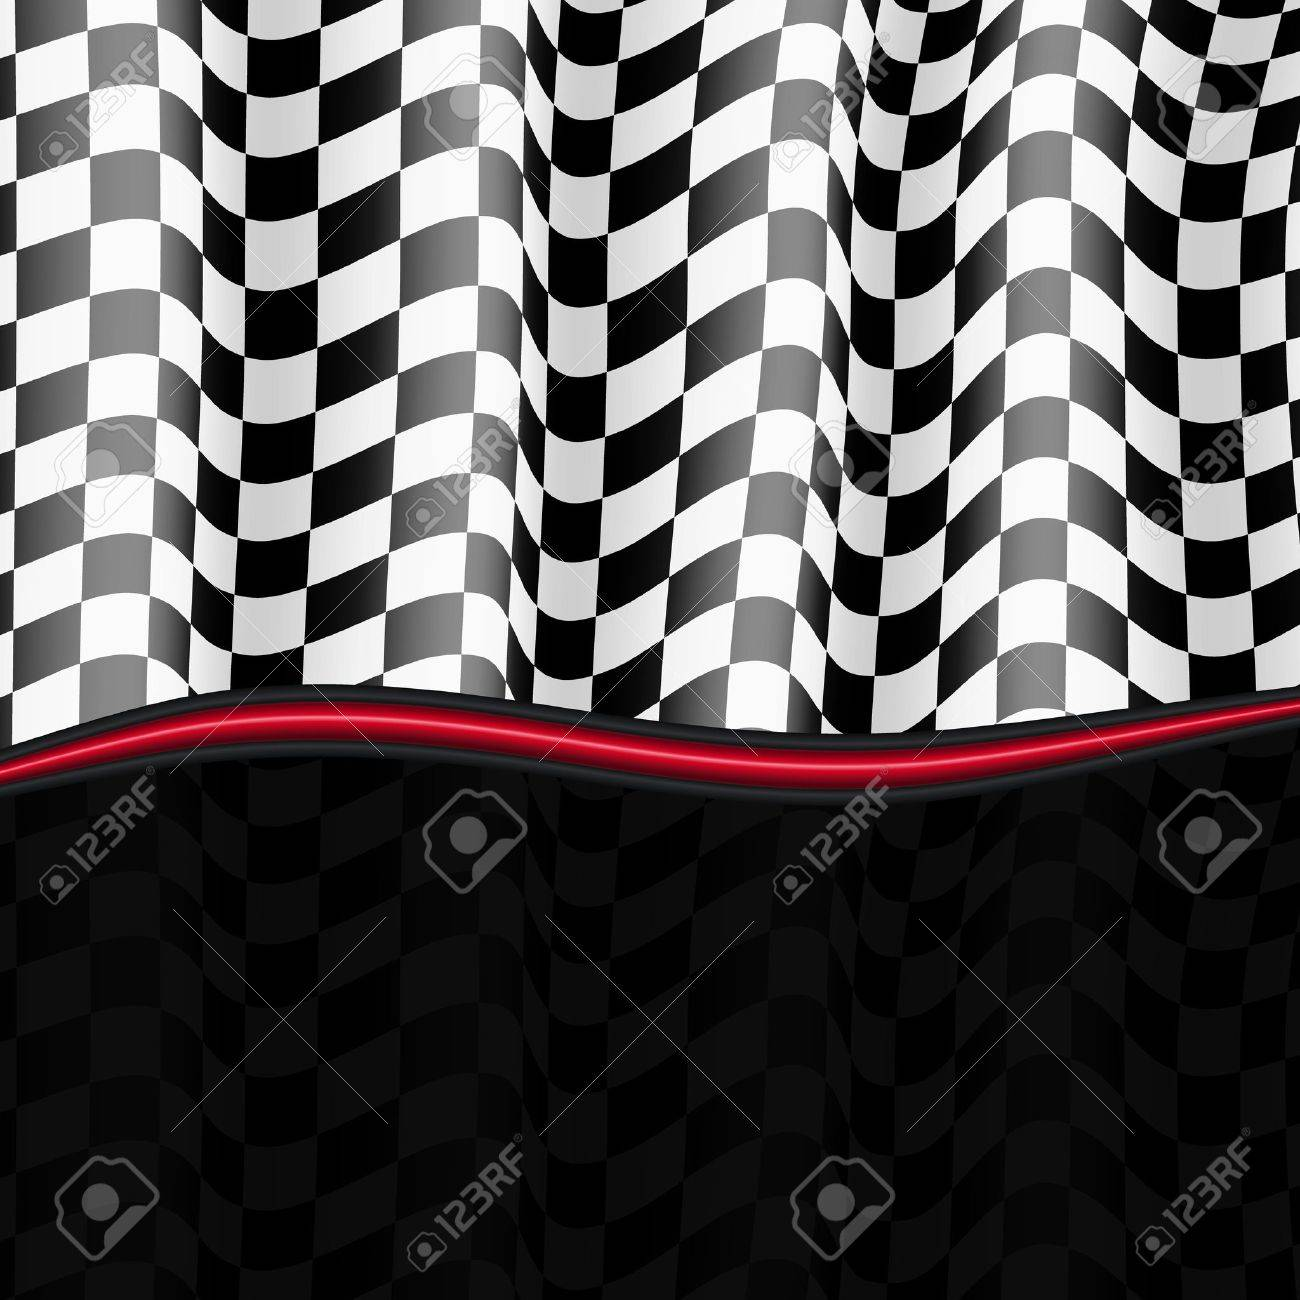 Racing Background  Checkered Flag  Vector eps10 Stock Vector - 18633772